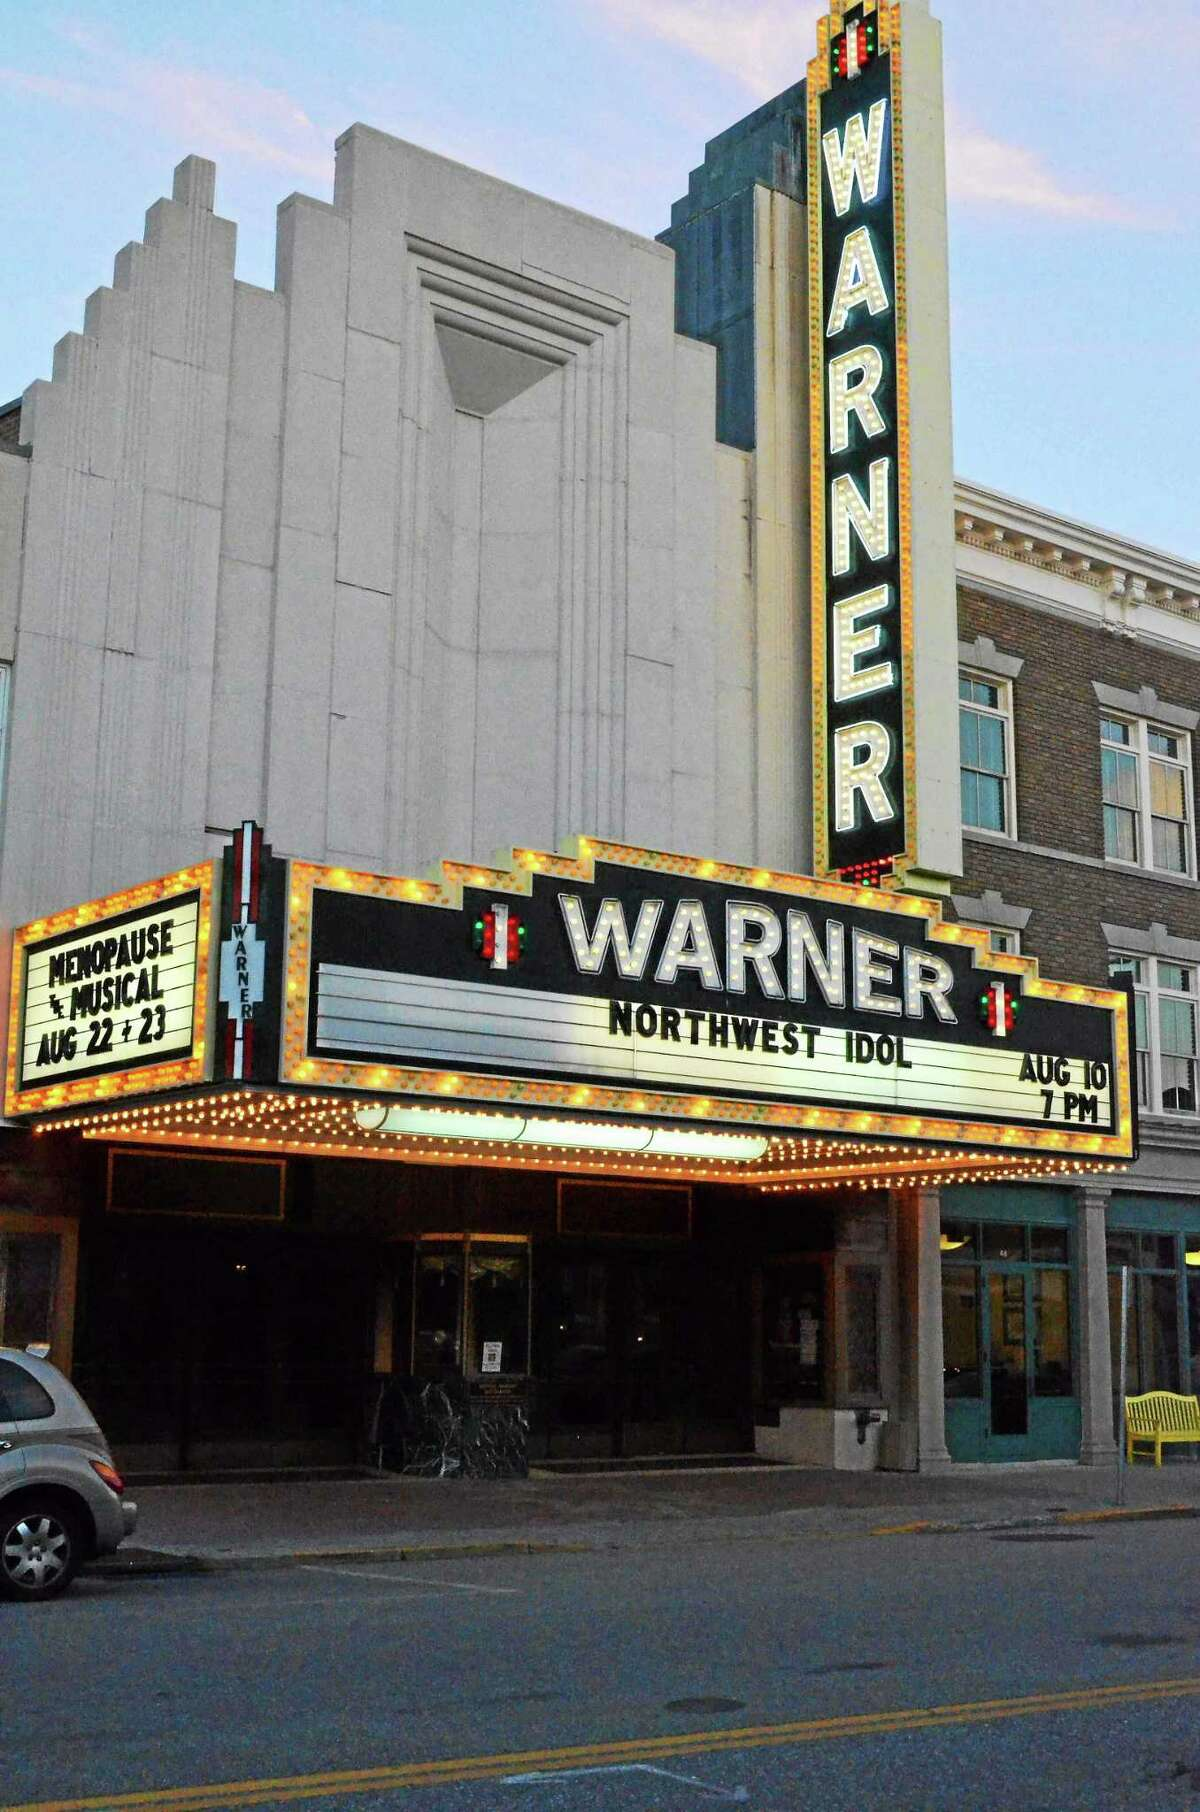 The marquee of the Warner Theatre on Main Street welcomed fans on the night of a previous Northwest Idol finals in Torrington.